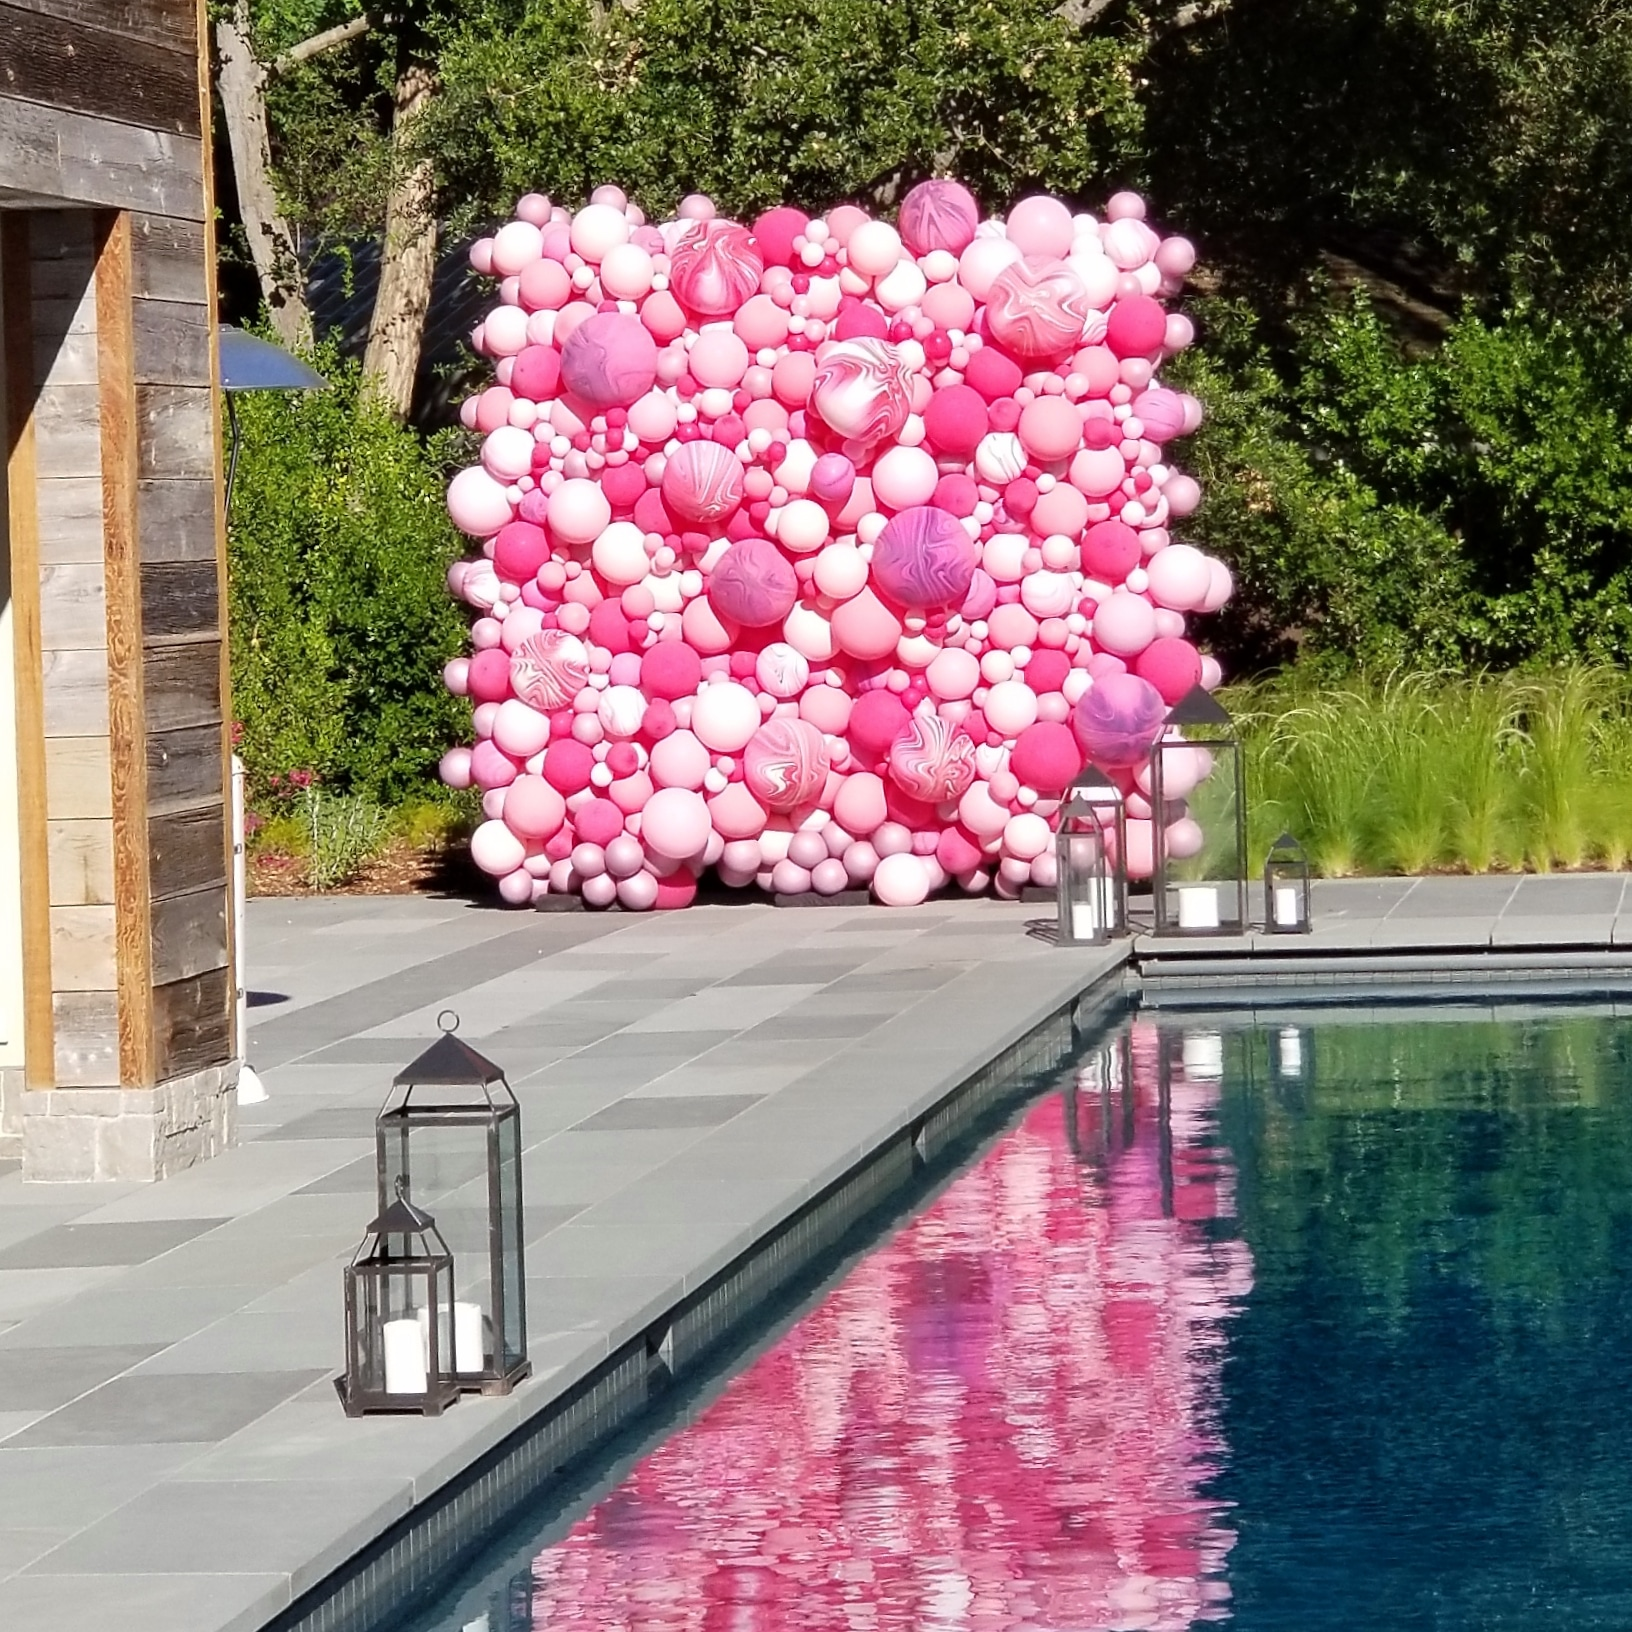 Balloon Wall - Atherton - Birthday Baloon Delivery - Zim Balloons.jpg